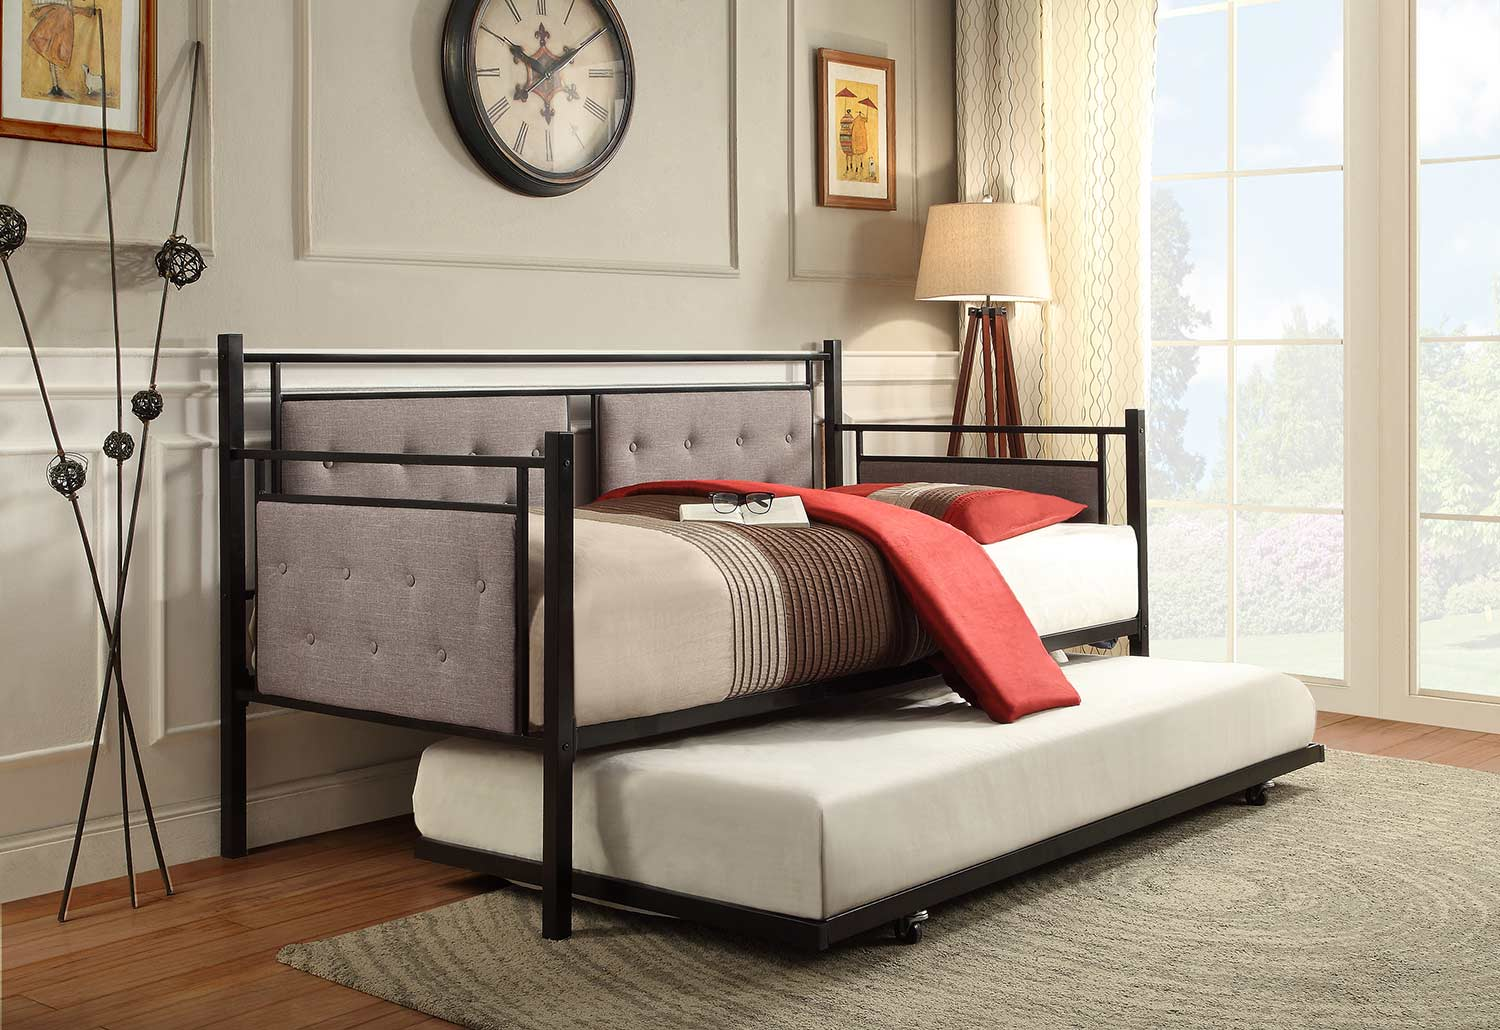 Homelegance Jones Metal Daybed with Trundle - Black